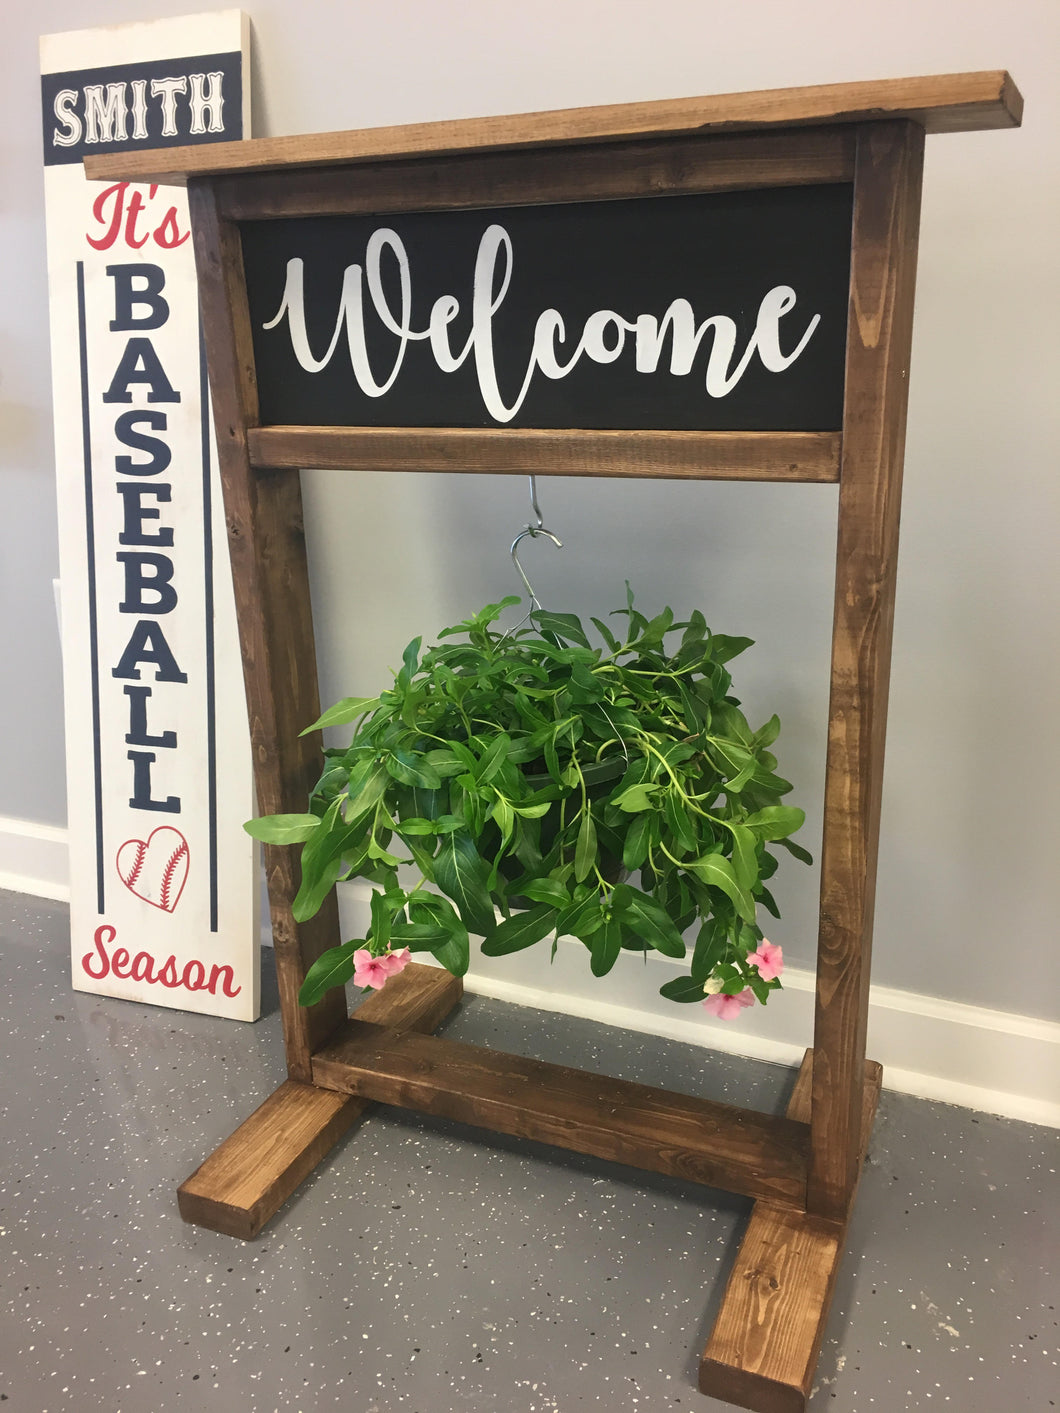 4/19/2019 (6:30pm) Hanging Plant Stand Workshop (Southern Pines)